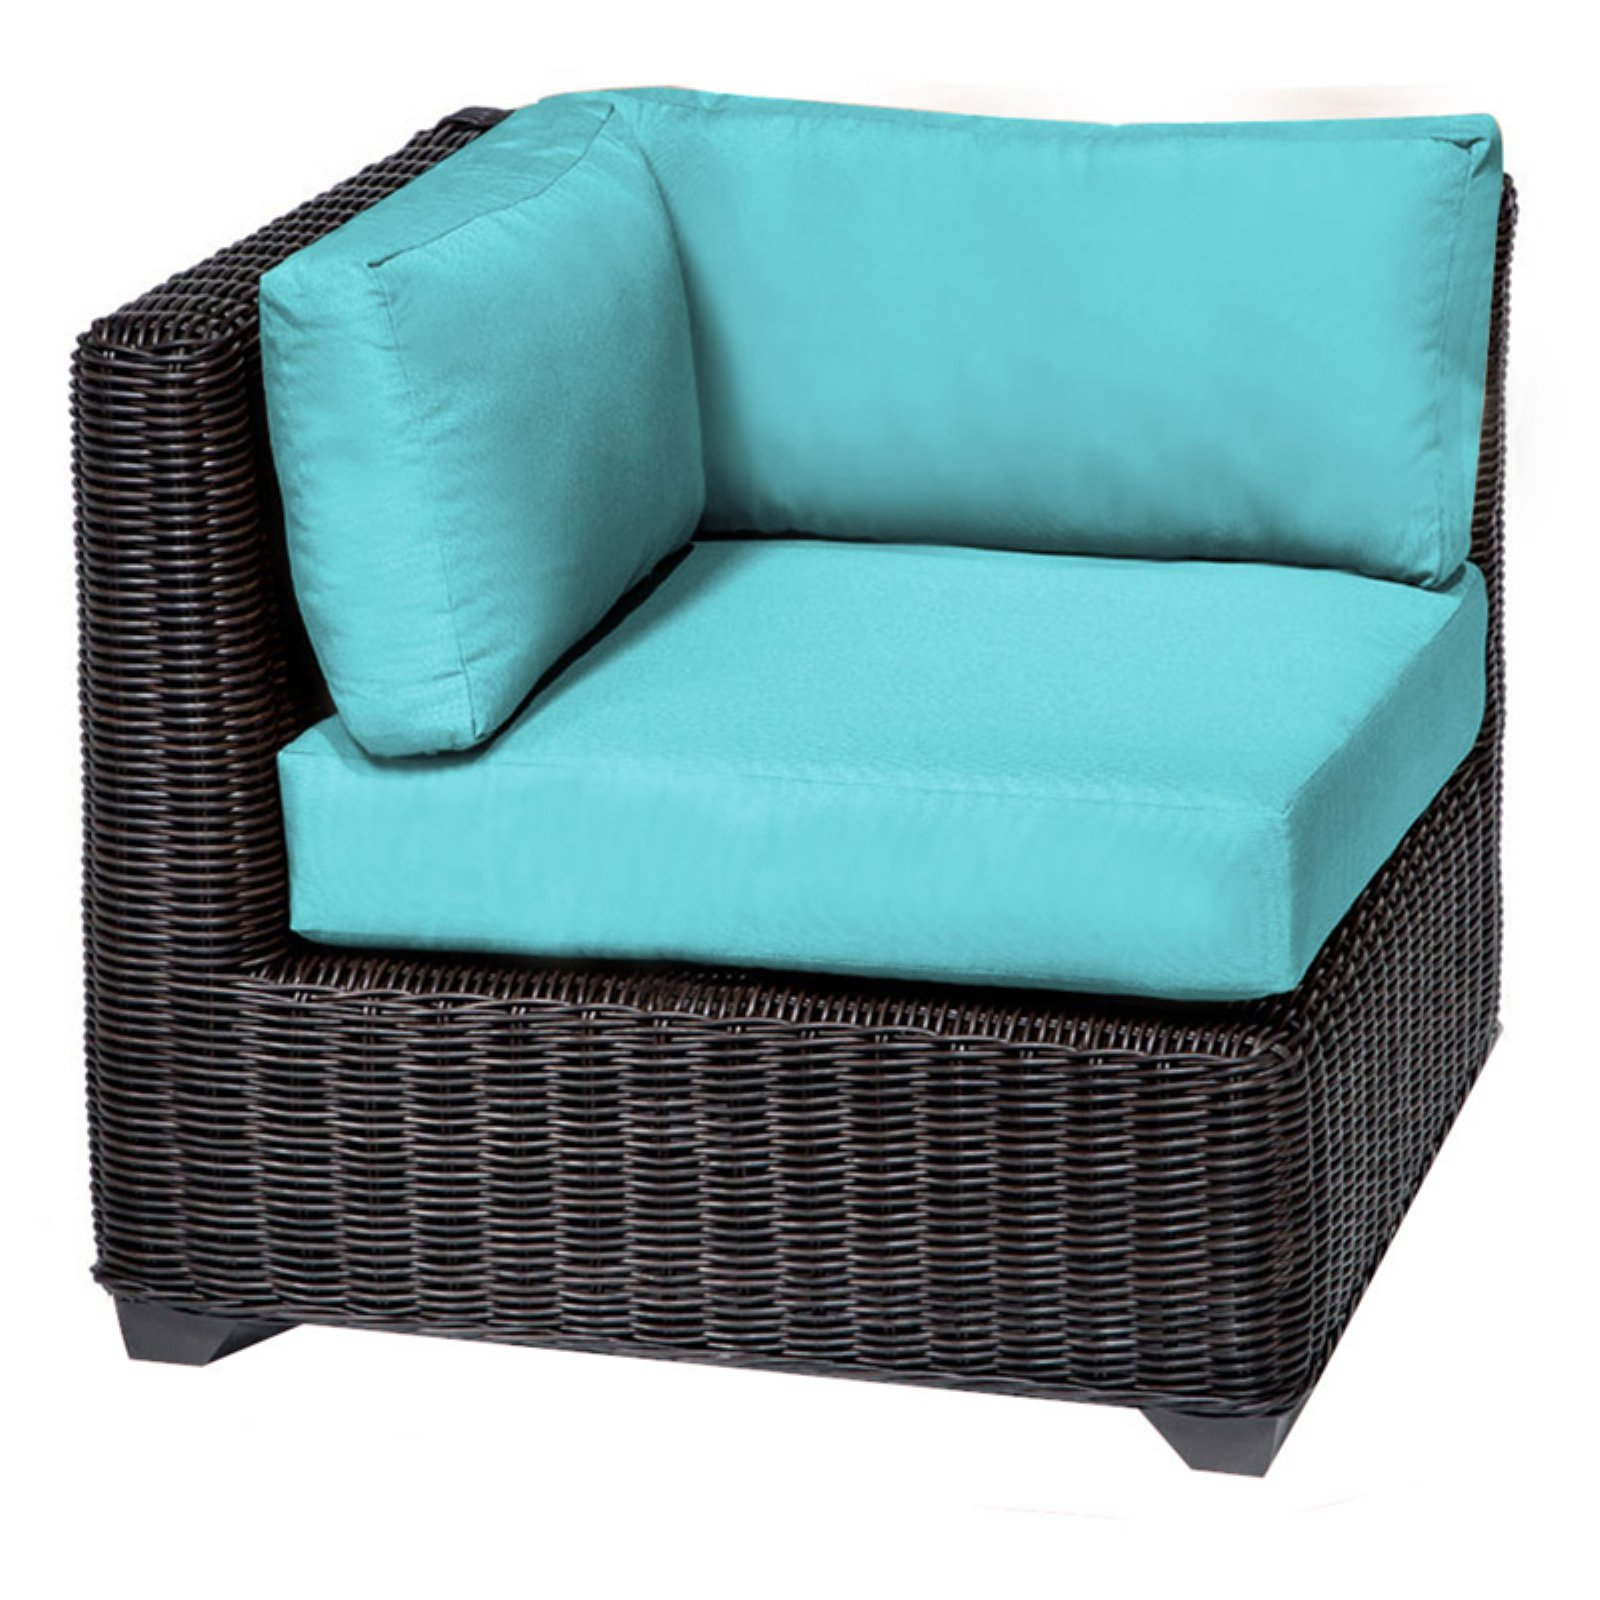 TK Classics Venice Outdoor Corner Chair with 2 Sets of Cu...